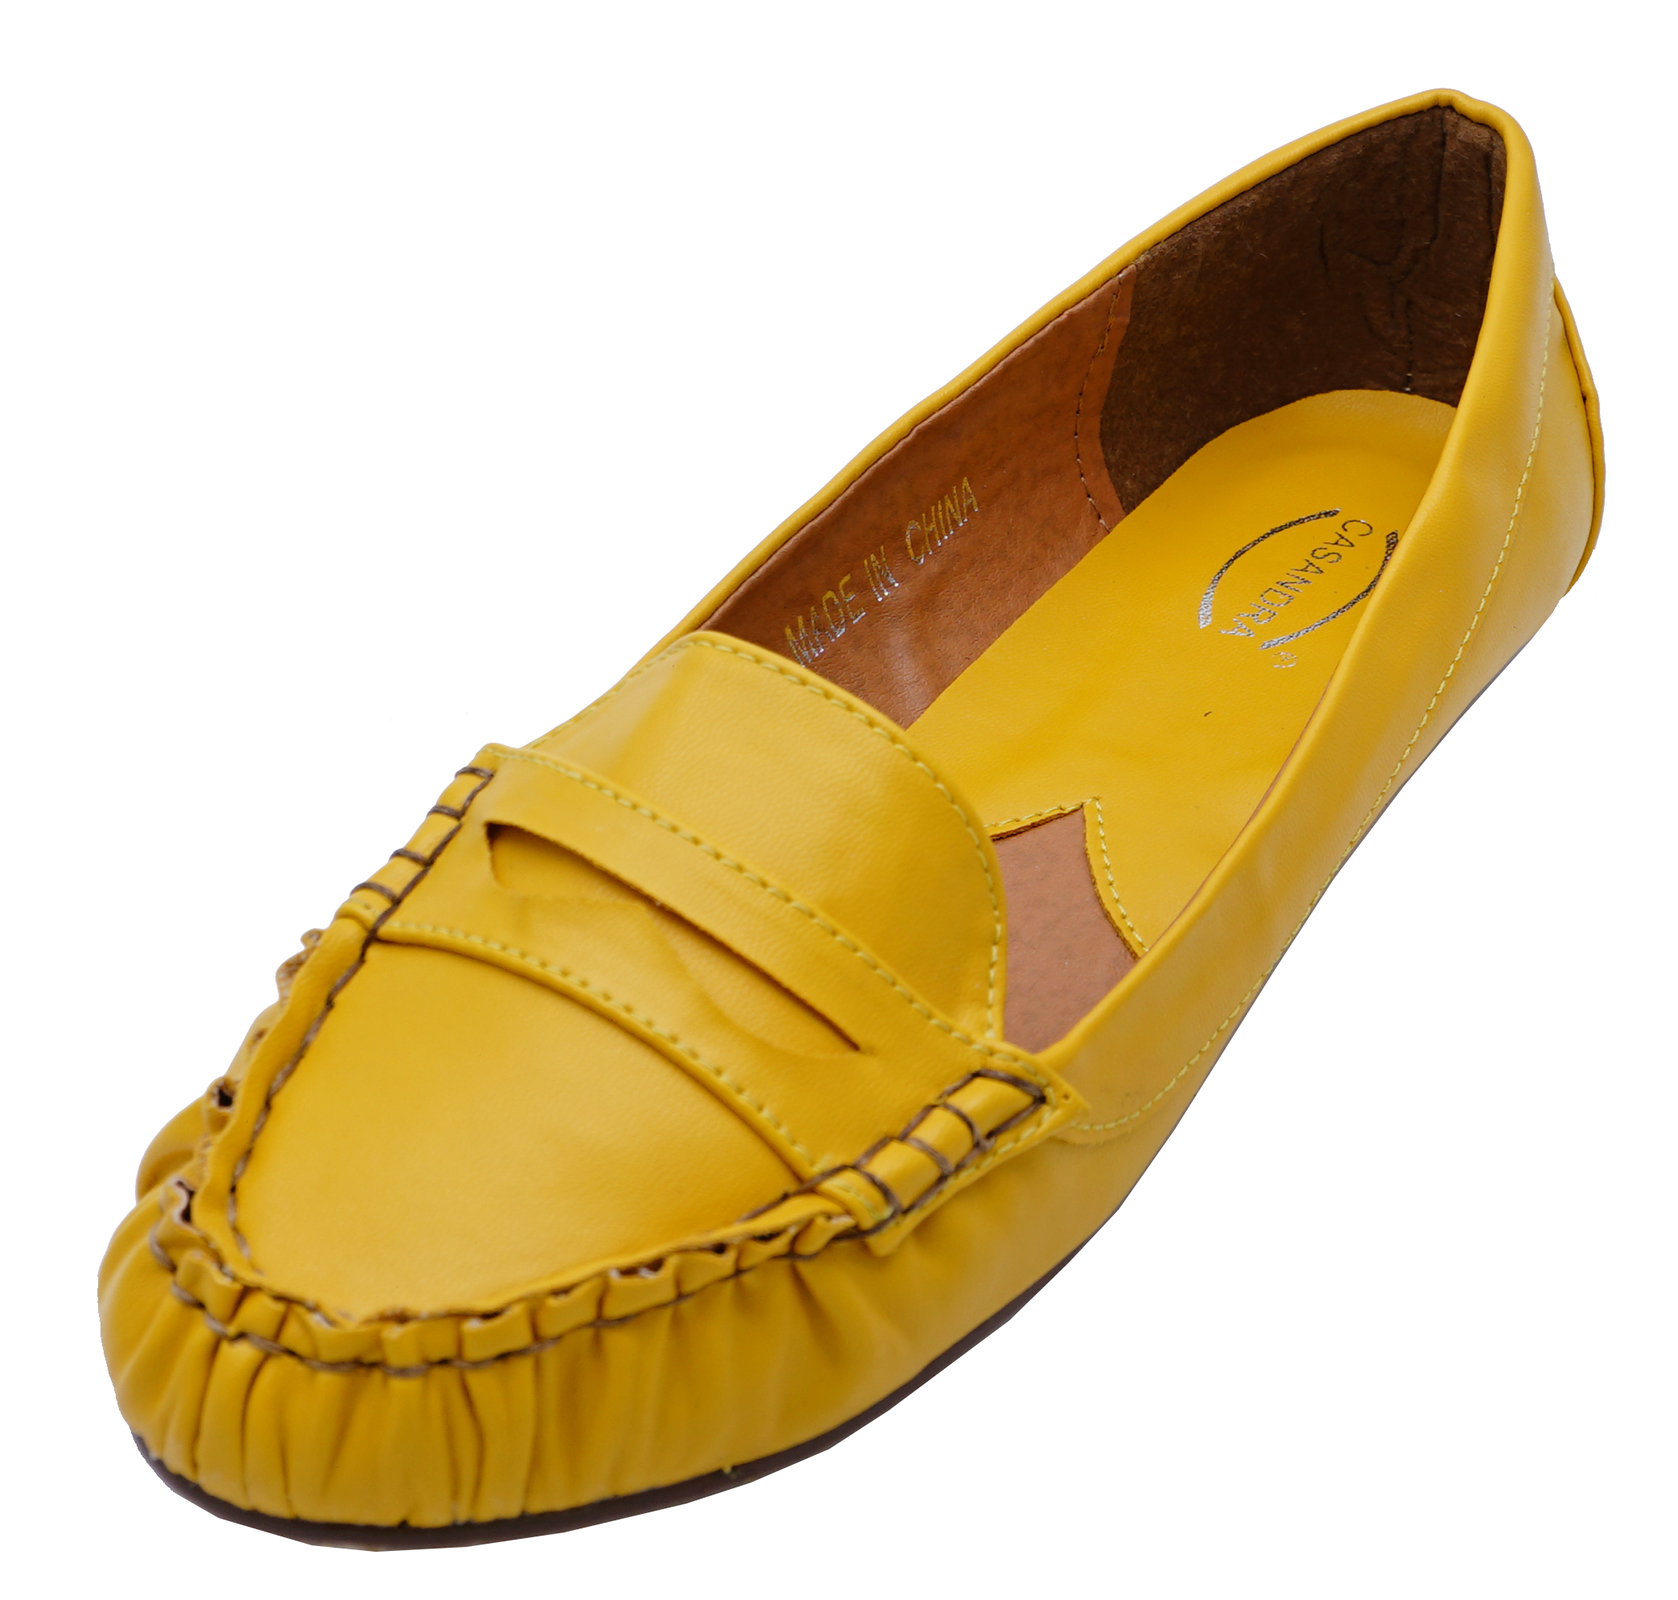 75b0fa0b481 Sentinel WOMENS FLAT YELLOW SLIP-ON MOCCASINS DECK LOAFERS COMFY CASUAL  SHOES UK 3-8